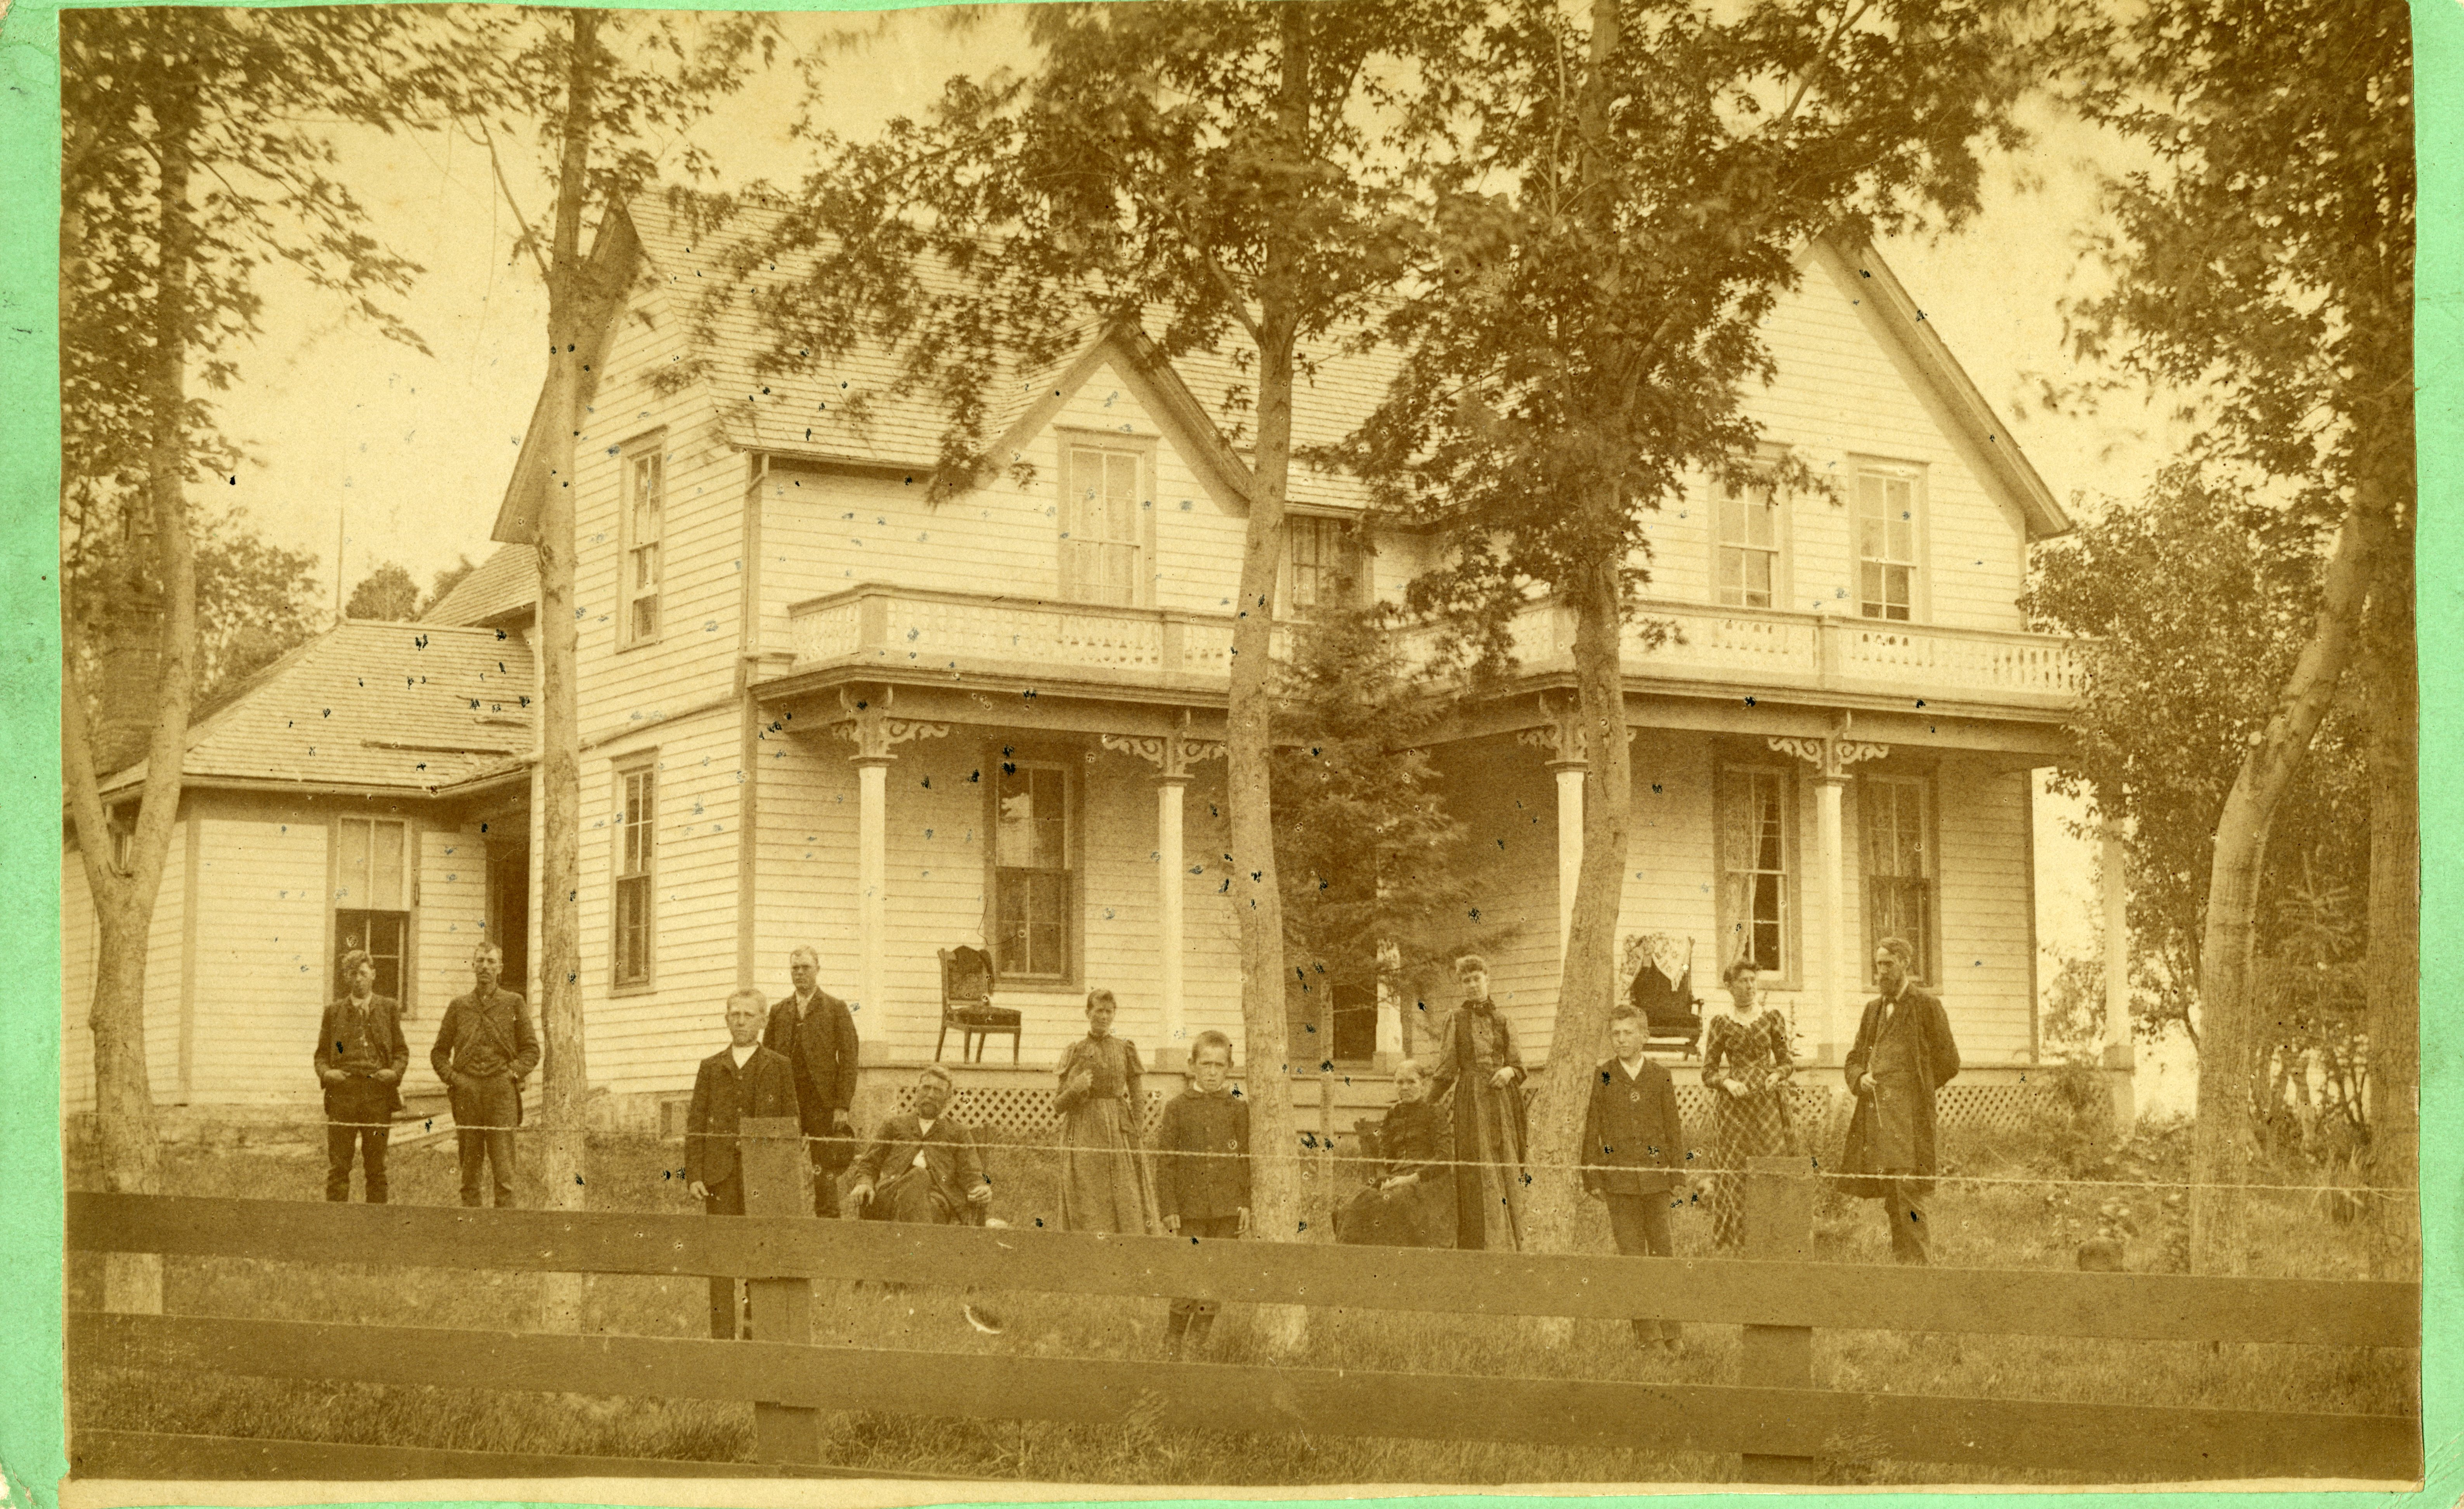 Twelve people stand outside of a house.